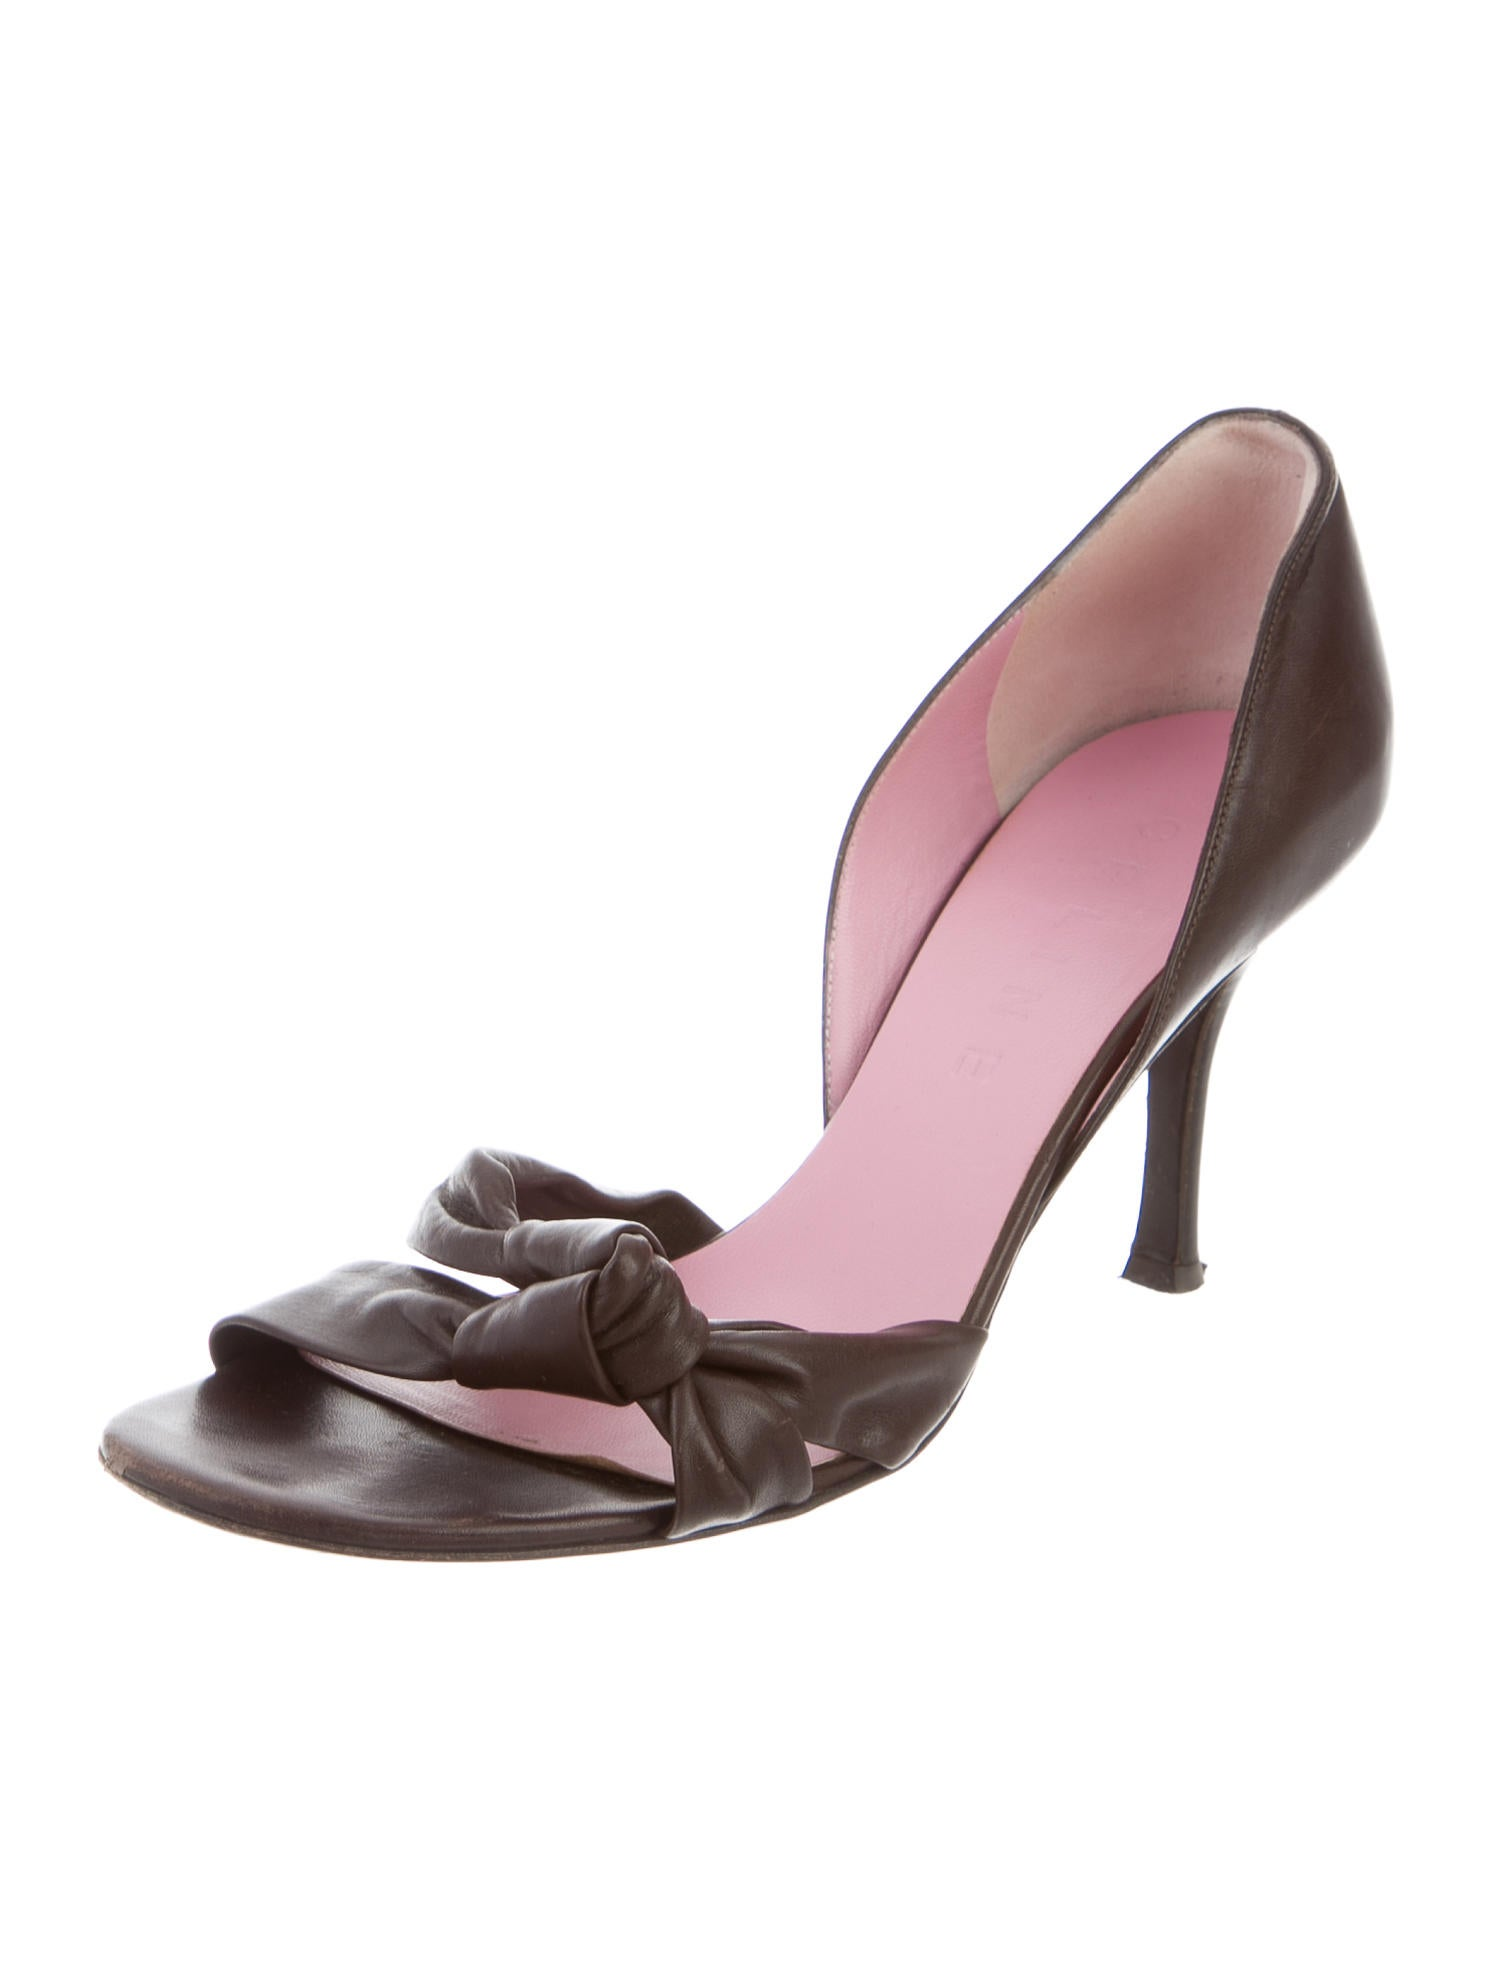 Kate Spade New York. Women's Sala D'Orsay Pump. from $ 98 40 Prime. out of 5 stars DREAM PAIRS. Women's Flapointed-New Pump $ 19 99 Prime. out of 5 stars Women Basic Slip on D'Orsay Pumps Heels Pointed Toe Faux Suede Office Dress Shoes Size .